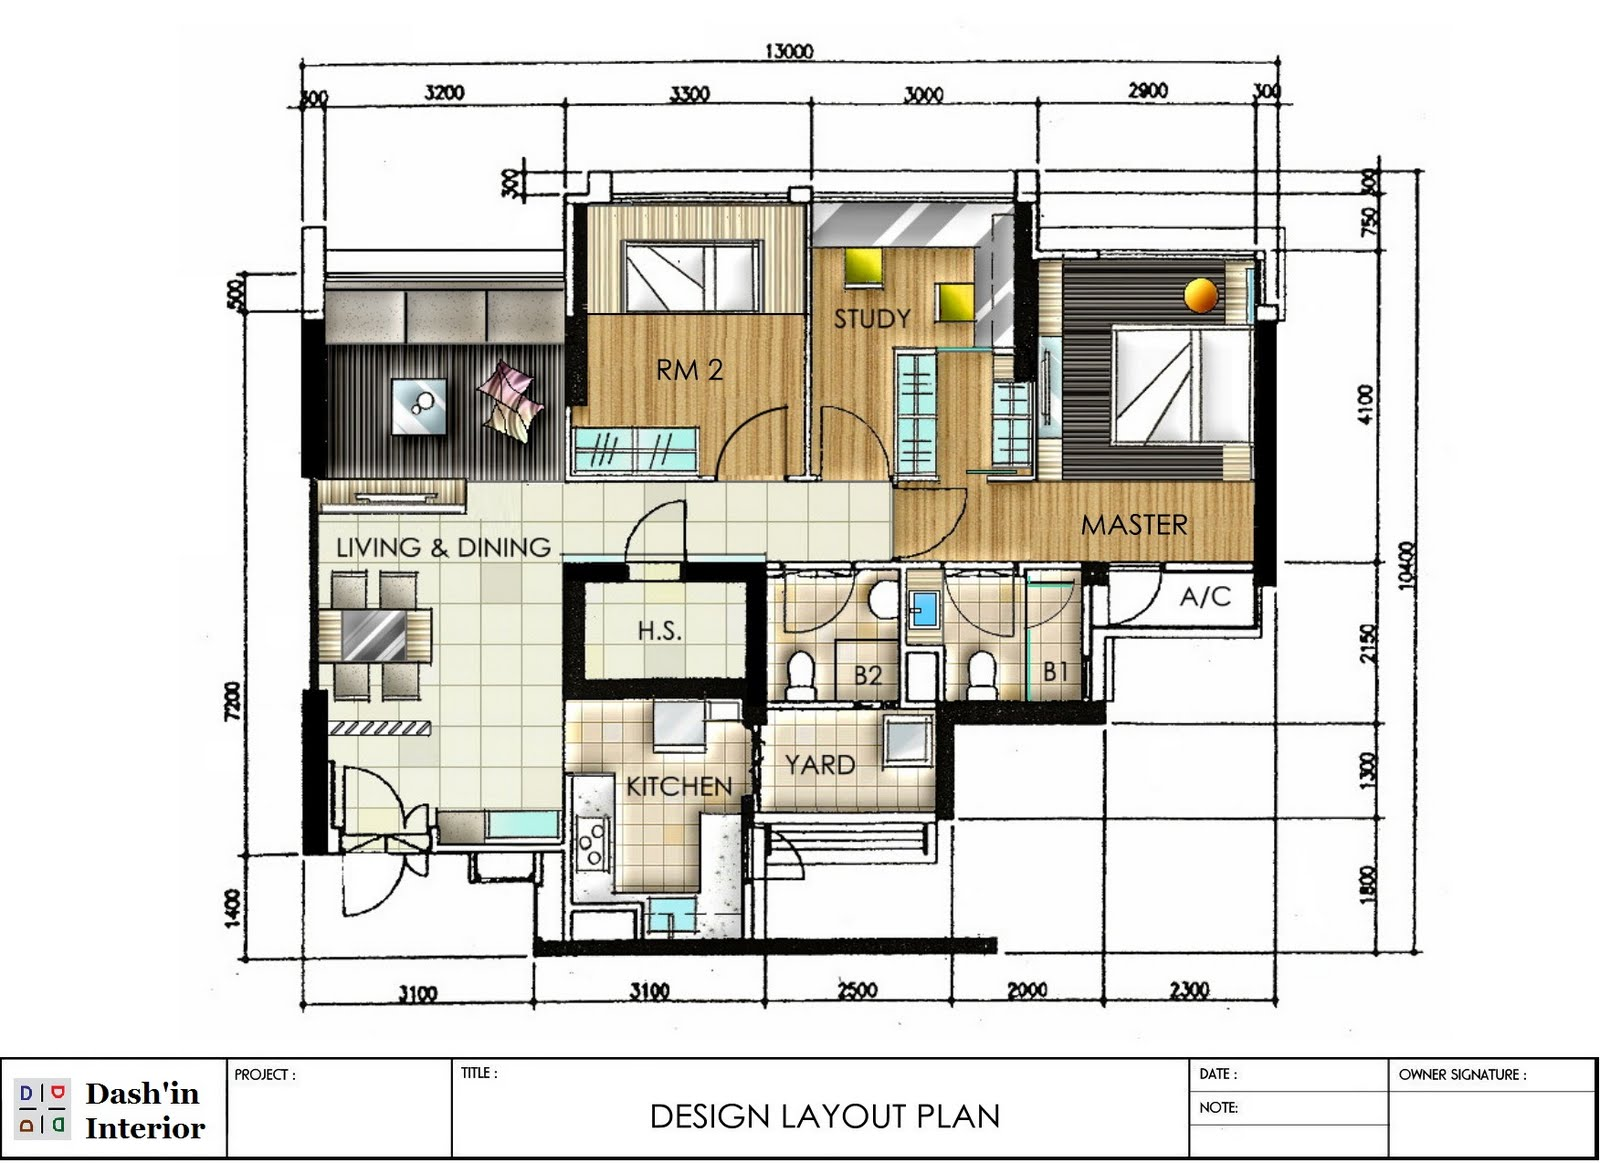 Dash 39 in interior hand drawn designs floor plan layout for Floor plan layout